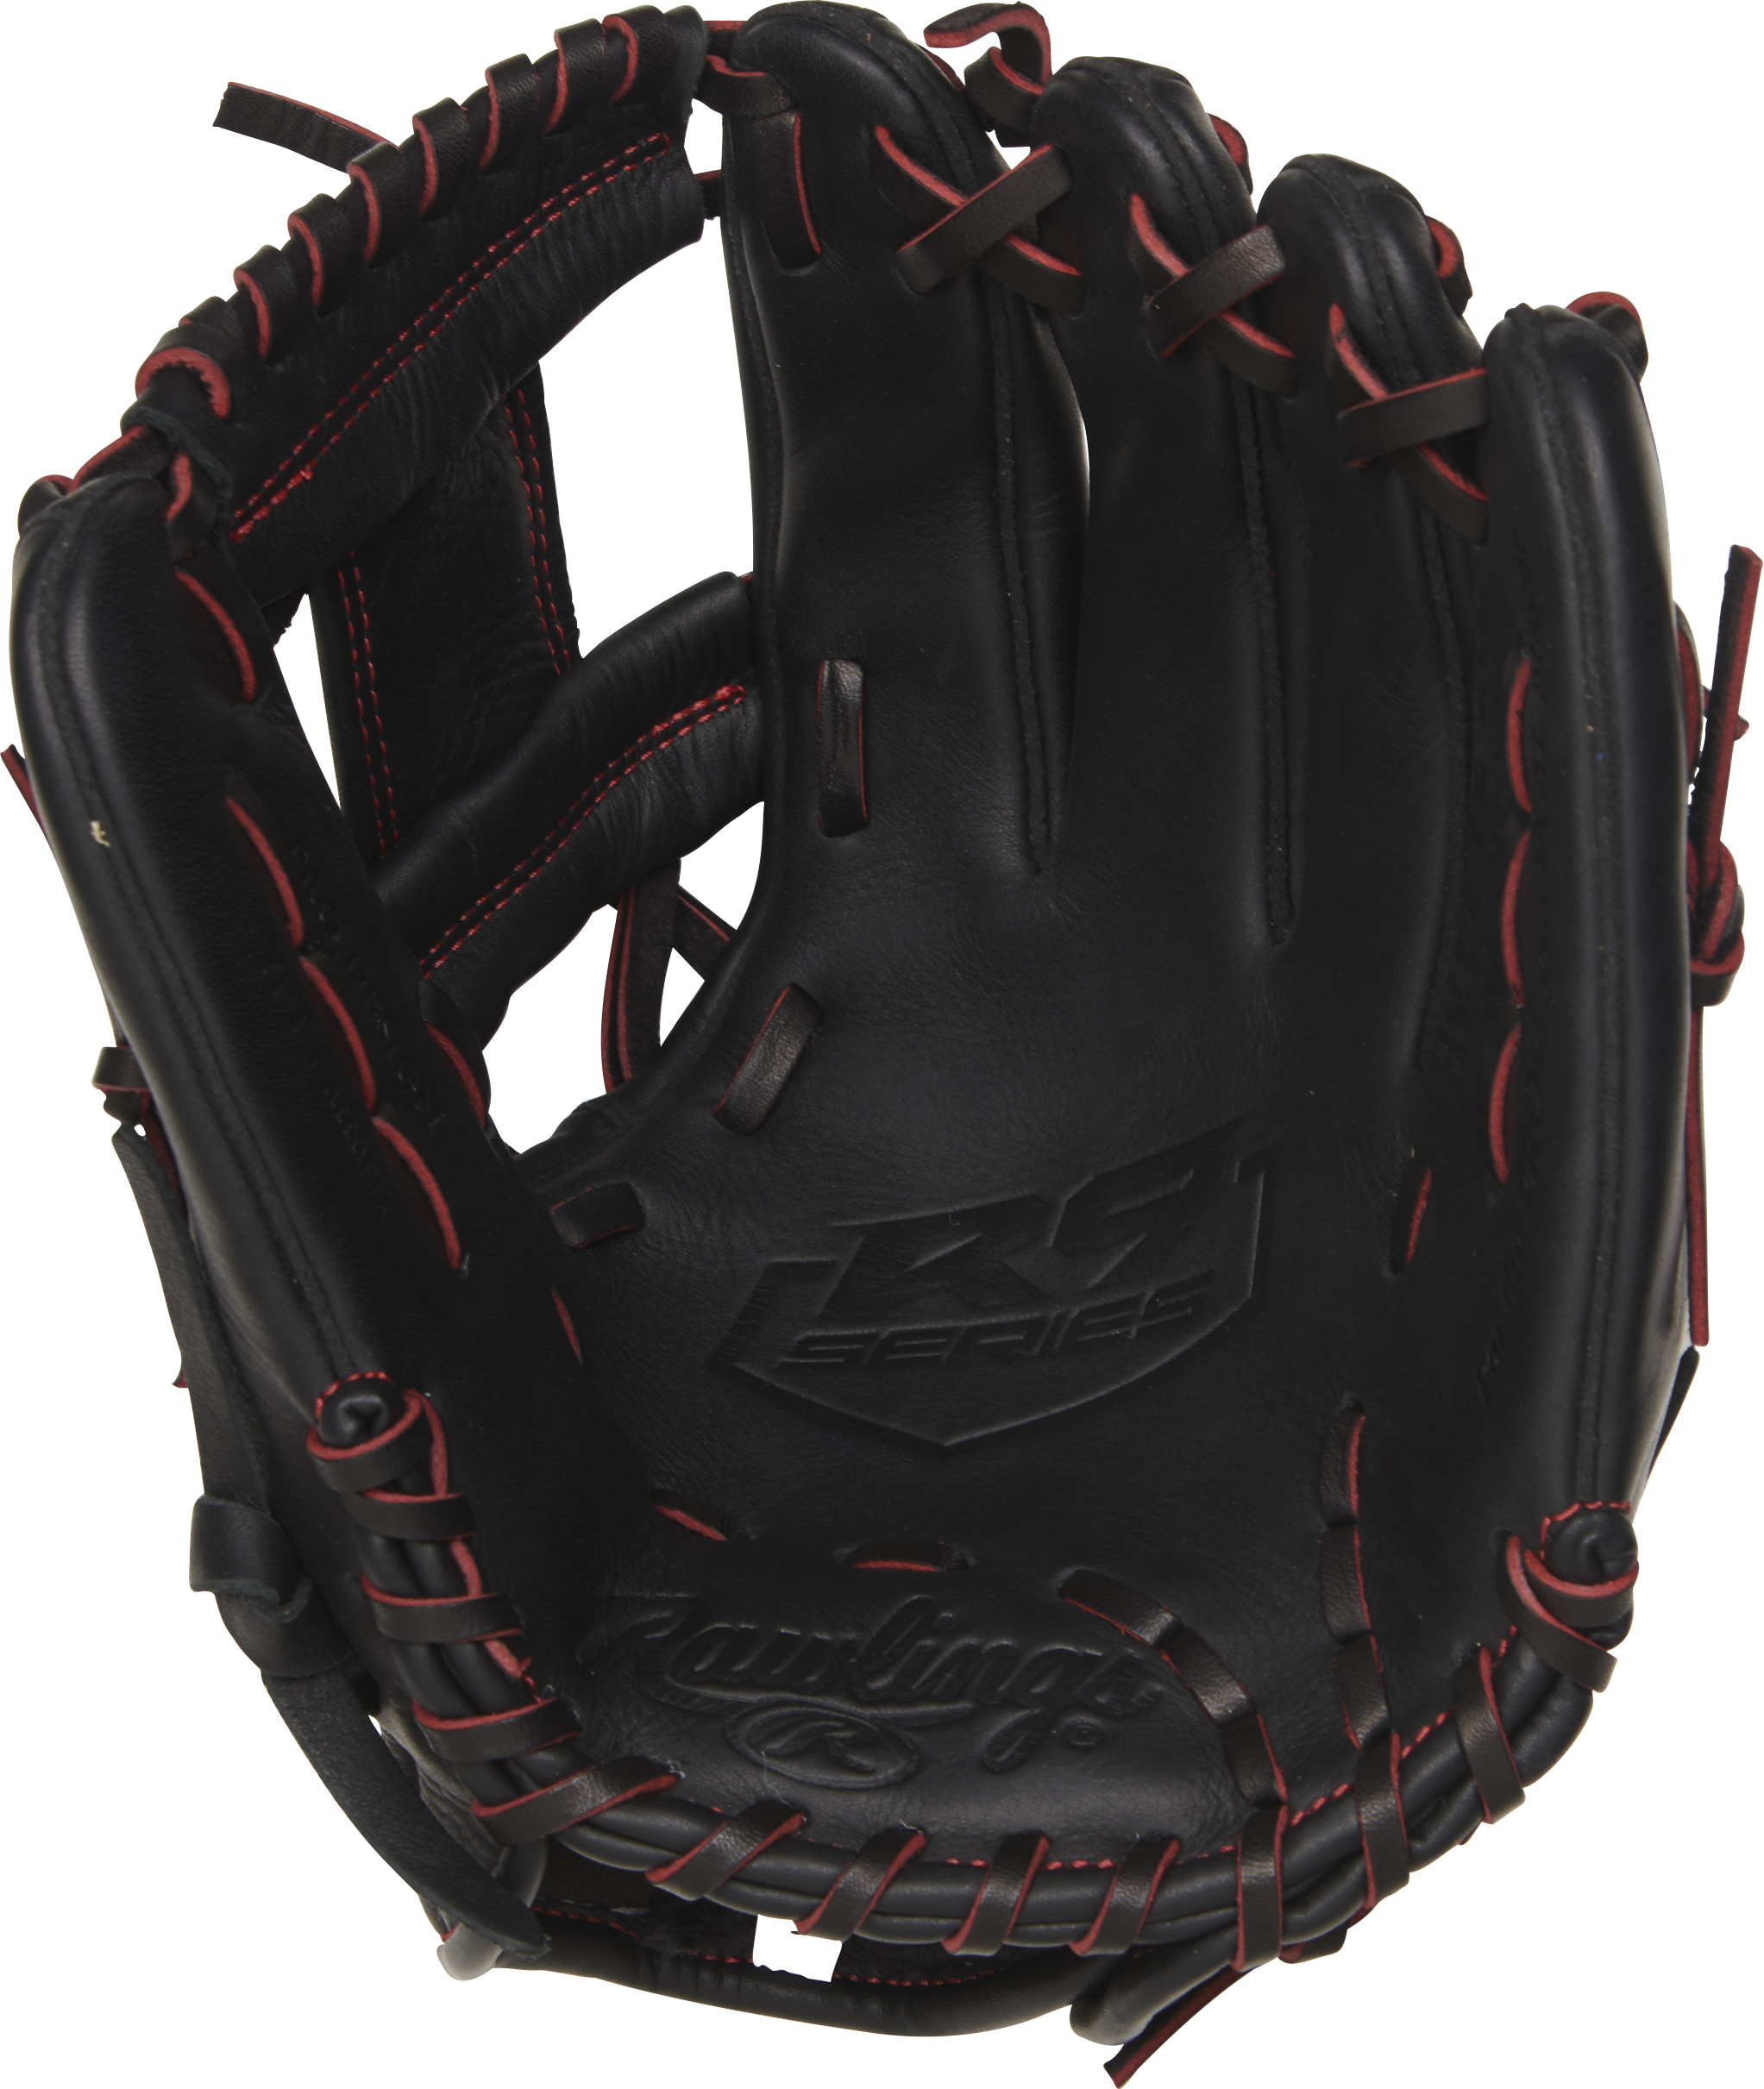 http://www.bestbatdeals.com/images/gloves/rawlings/R9YPT2-2B-1.jpg